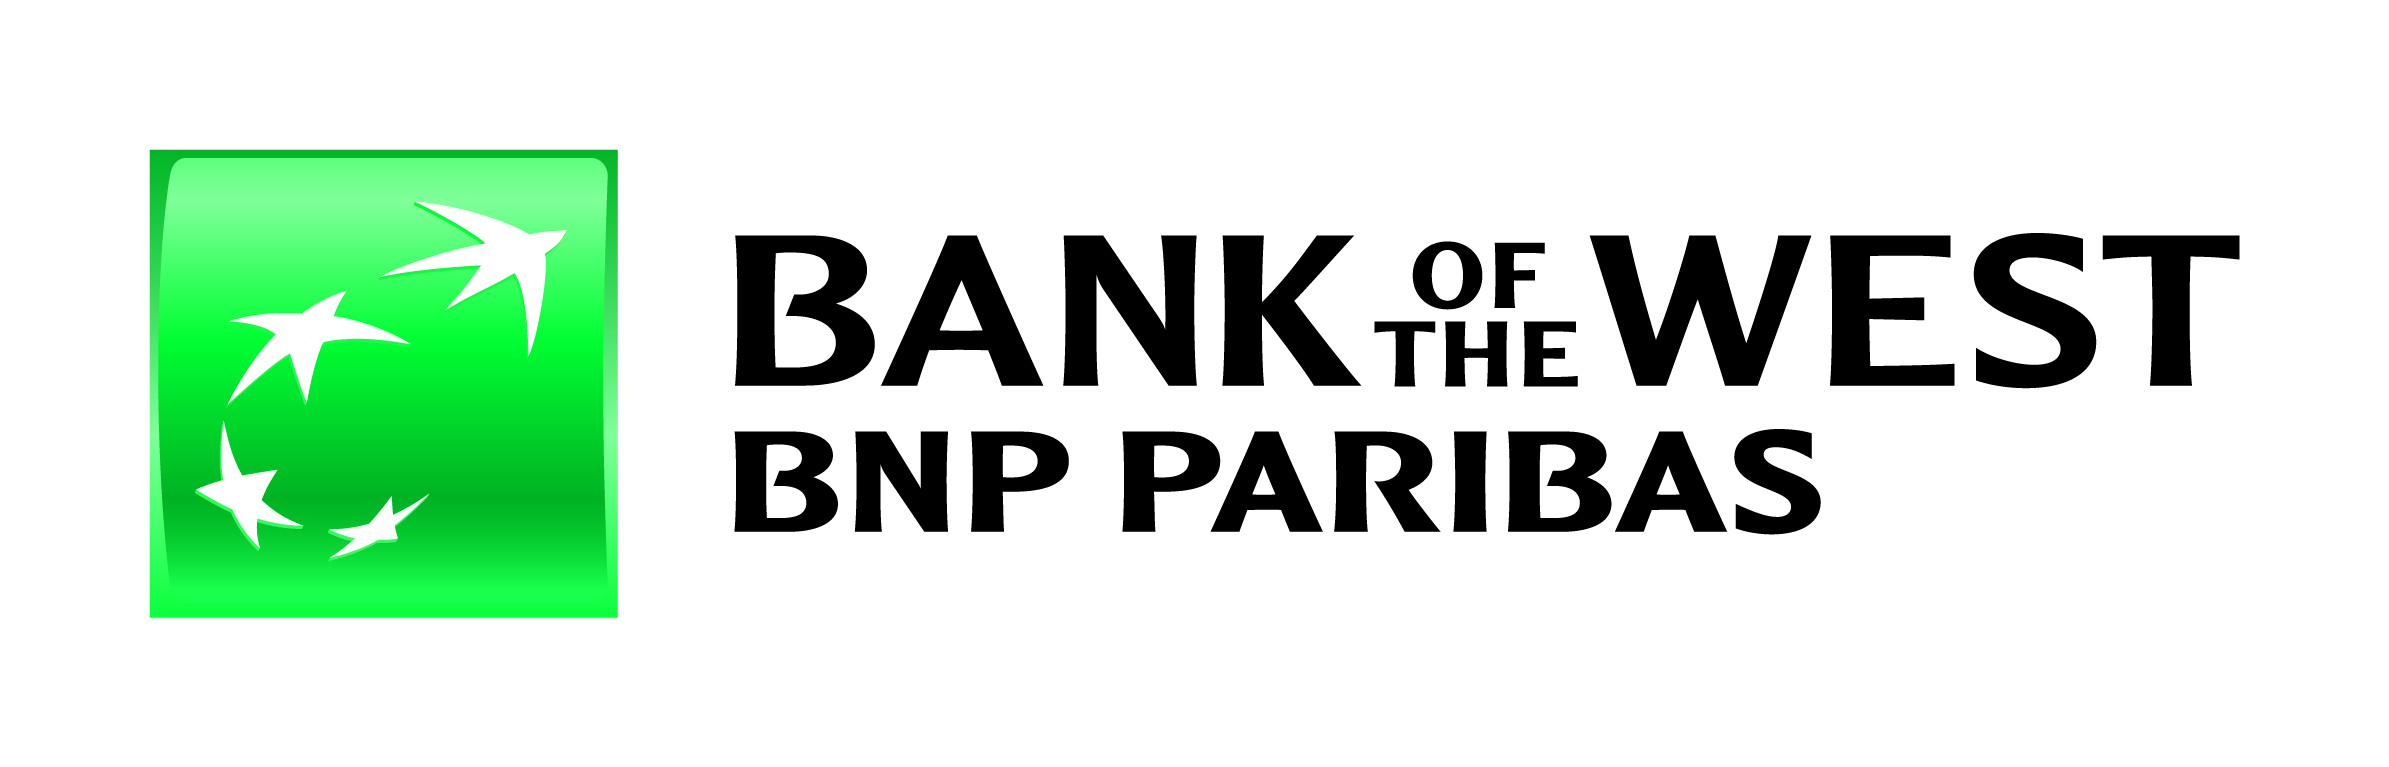 Bank of the West - Parnibas